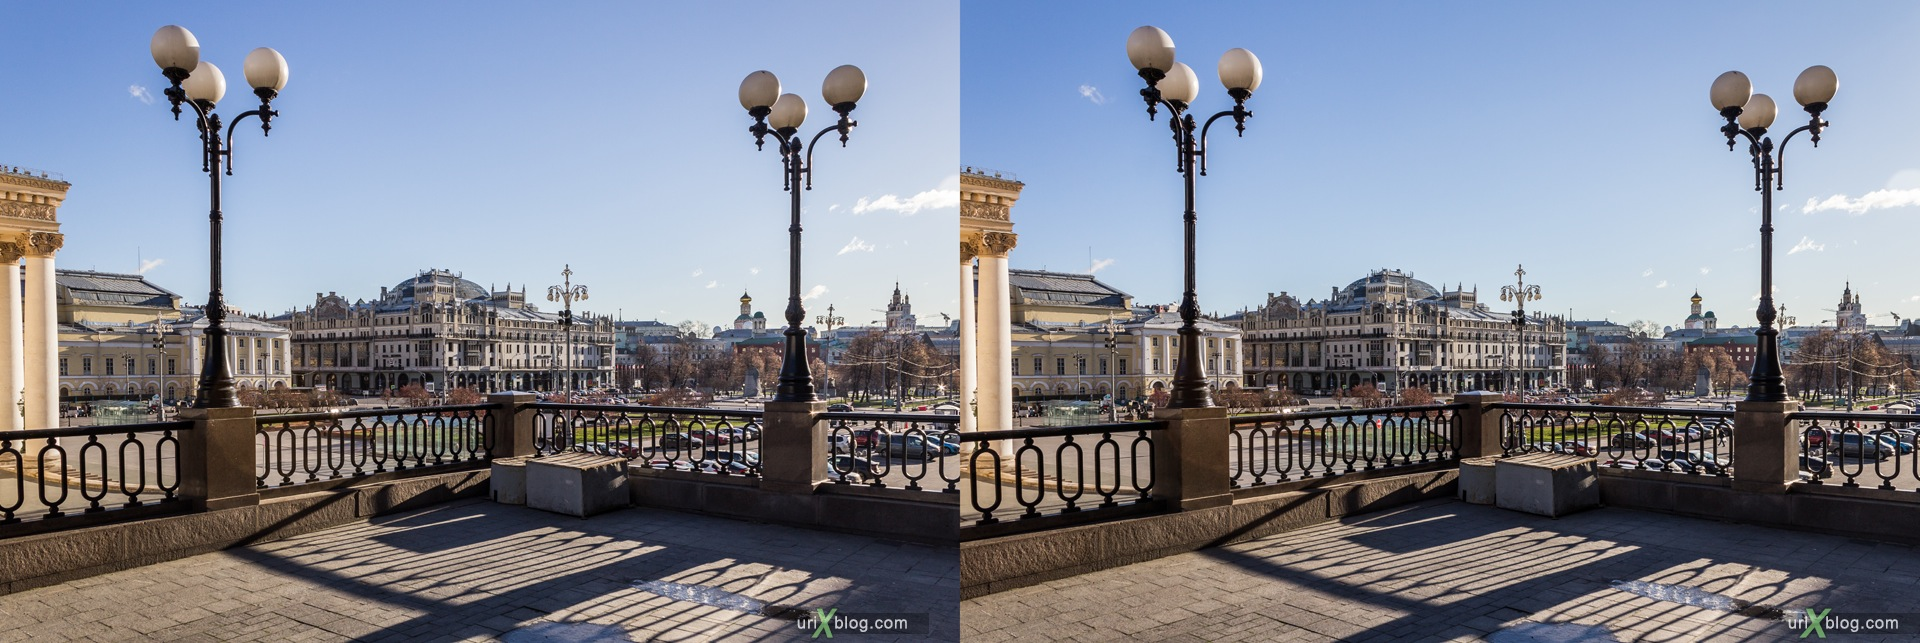 2013, Moscow, Russia, Teatralnaya square, Theatre square, Bolshow theatre, Grand theatre, Hotel Metropol, 3D, stereo pair, cross-eyed, crossview, cross view stereo pair, stereoscopic